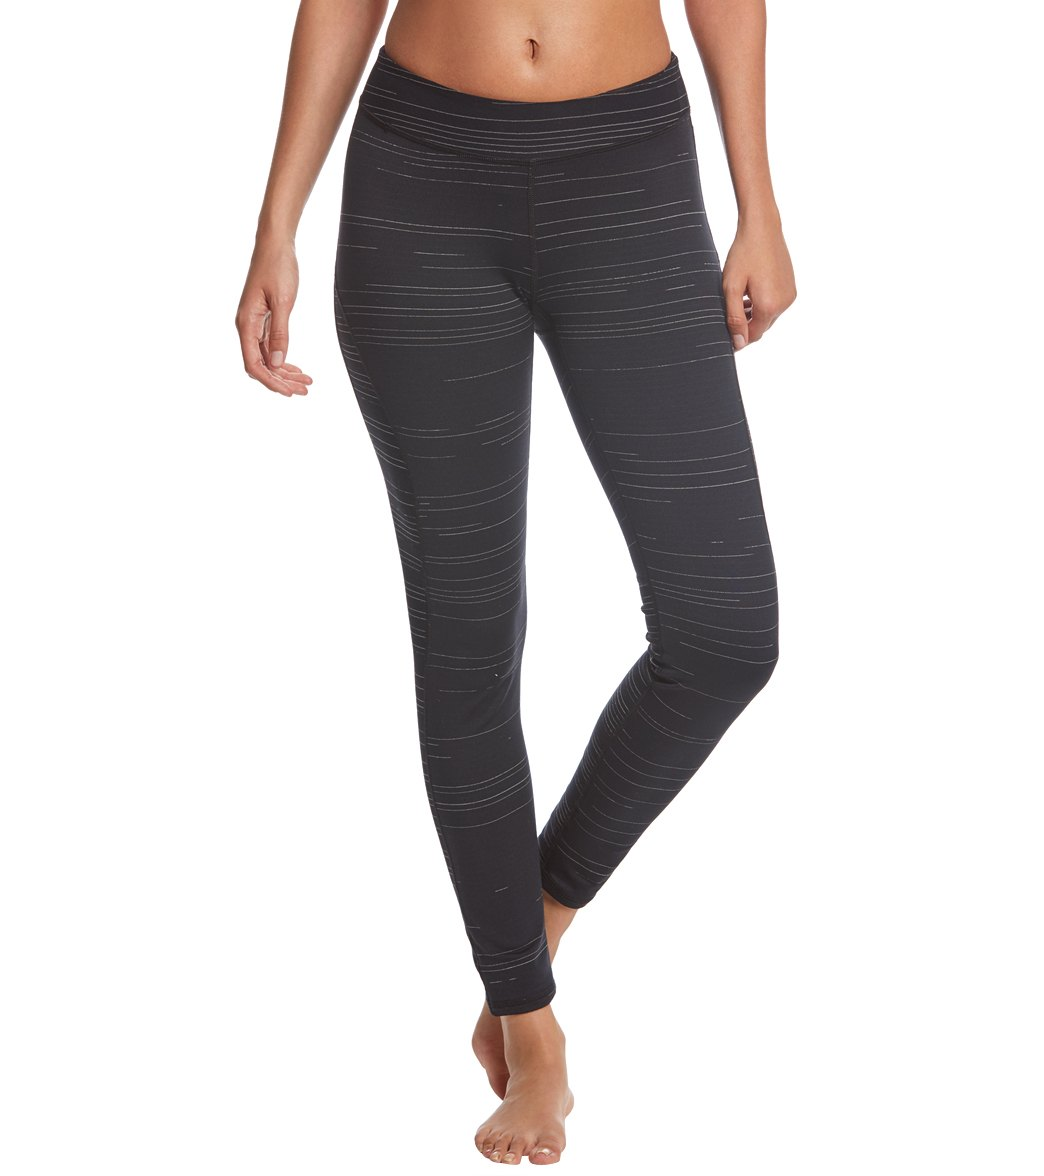 Head to the studio in a clean style with these Hard Tail Mid Rise Side Blocked Yoga Capris. These capris feature a clean, striped style and are also reversible for a two-for-one option you can\\\'t pass up! Features Women\\\'s full-length legging. Striped design. Moisture-wicking. Reversible. Details Fabric: 88% Polyester, 12% Spandex Color: Black Style Features: Striped, Reversible Fit: Tight Rise: Mid-rise Length: Ankle Adjustable: No Country of Origin Made in the USA. About Hard Tail: HardTail is a